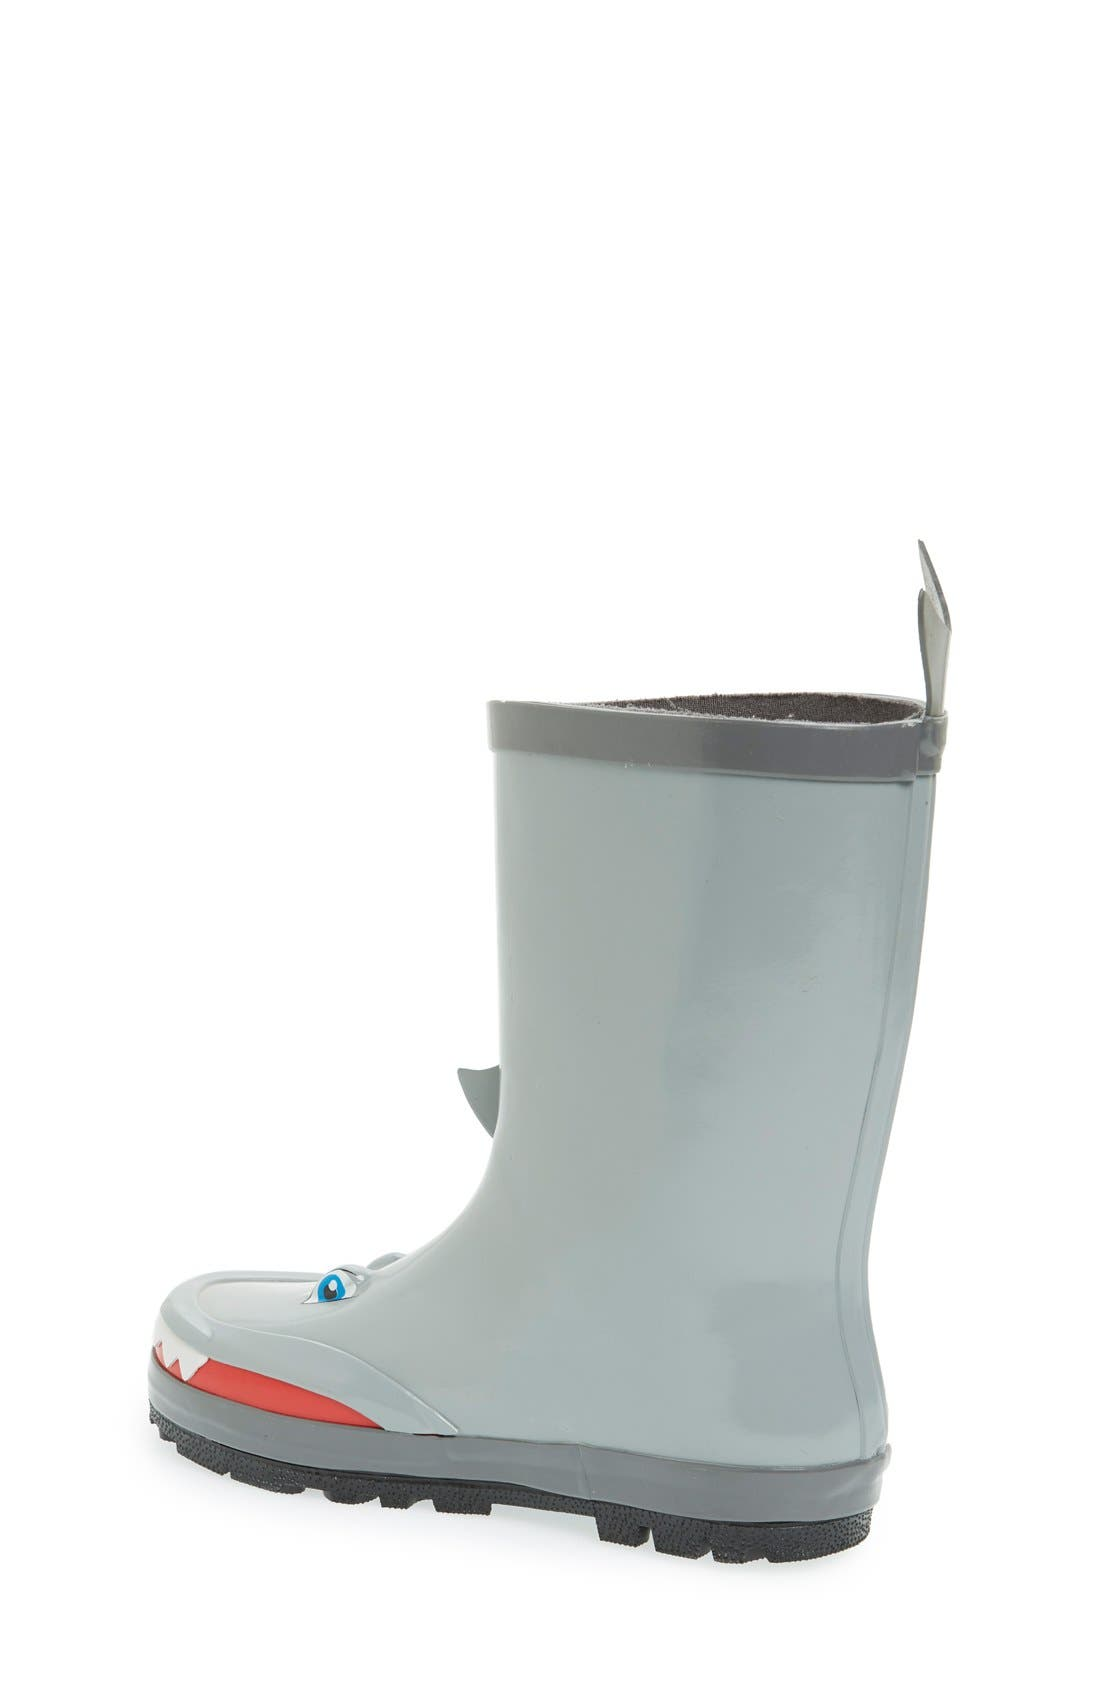 'Shark' Waterproof Rain Boot,                             Alternate thumbnail 2, color,                             020